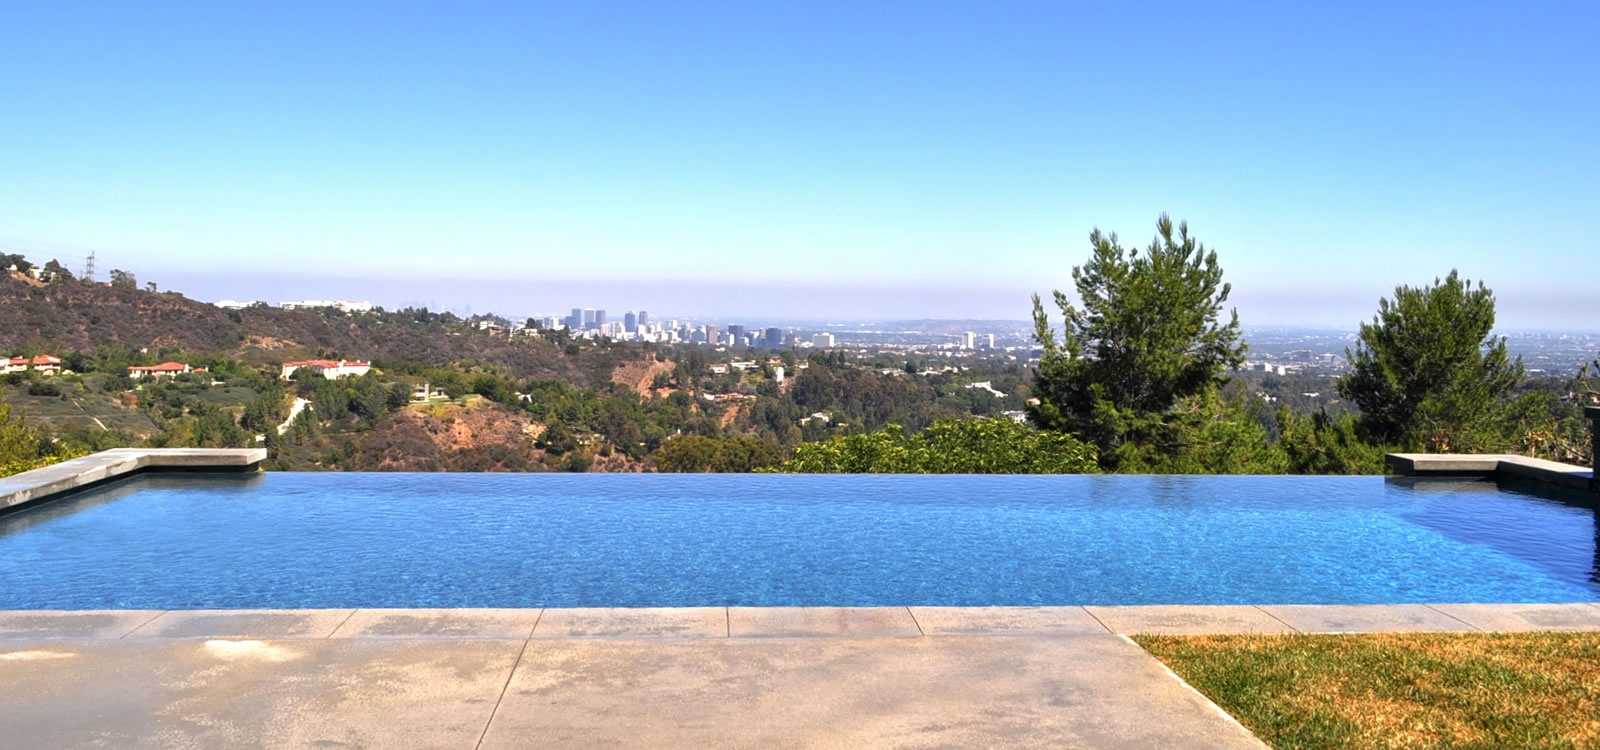 Incroyable Los Angeles Vanishing Edge Pool Design W/ Elevated Spa Custom Tile